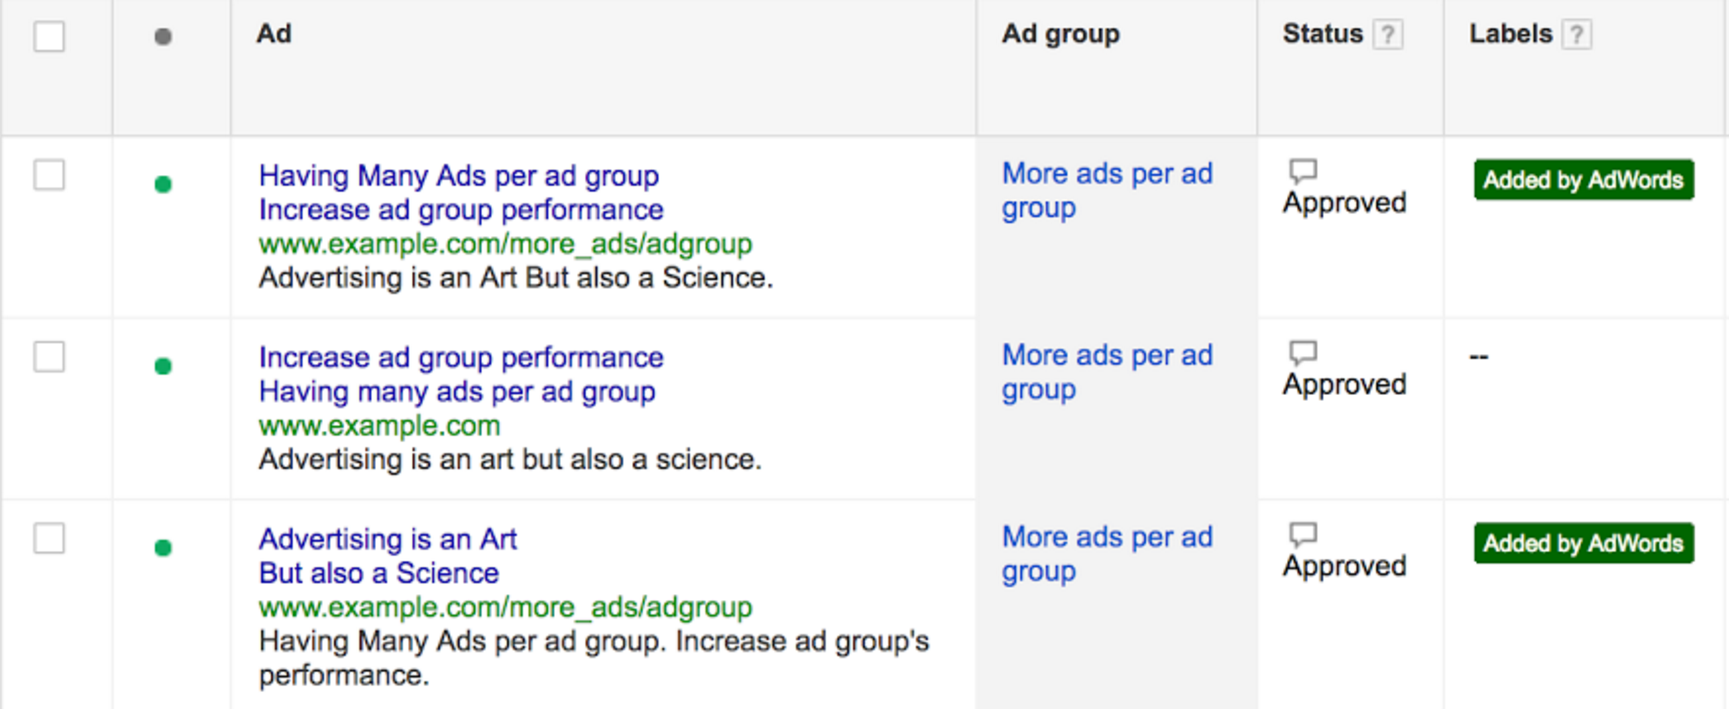 Added by AdWords